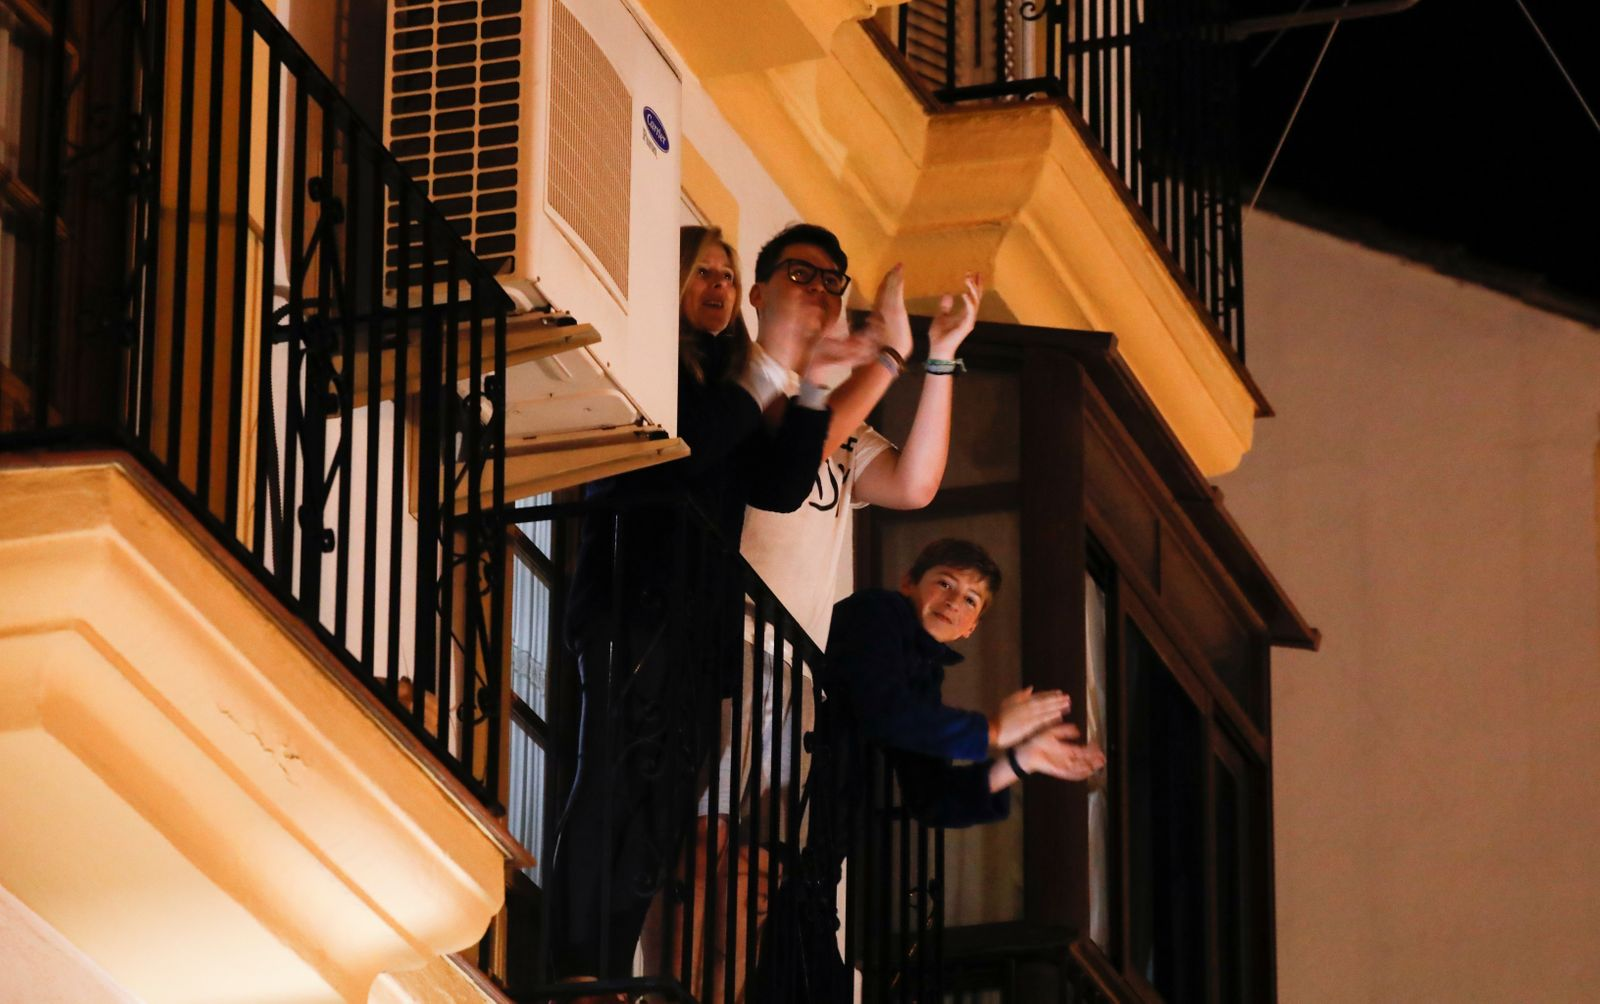 A family applaud from their balcony during a call on social media to thank Spanish medical staff fighting against coronavirus as they remain confined inside their homes due to the coronavirus outbreak, in downtown Ronda